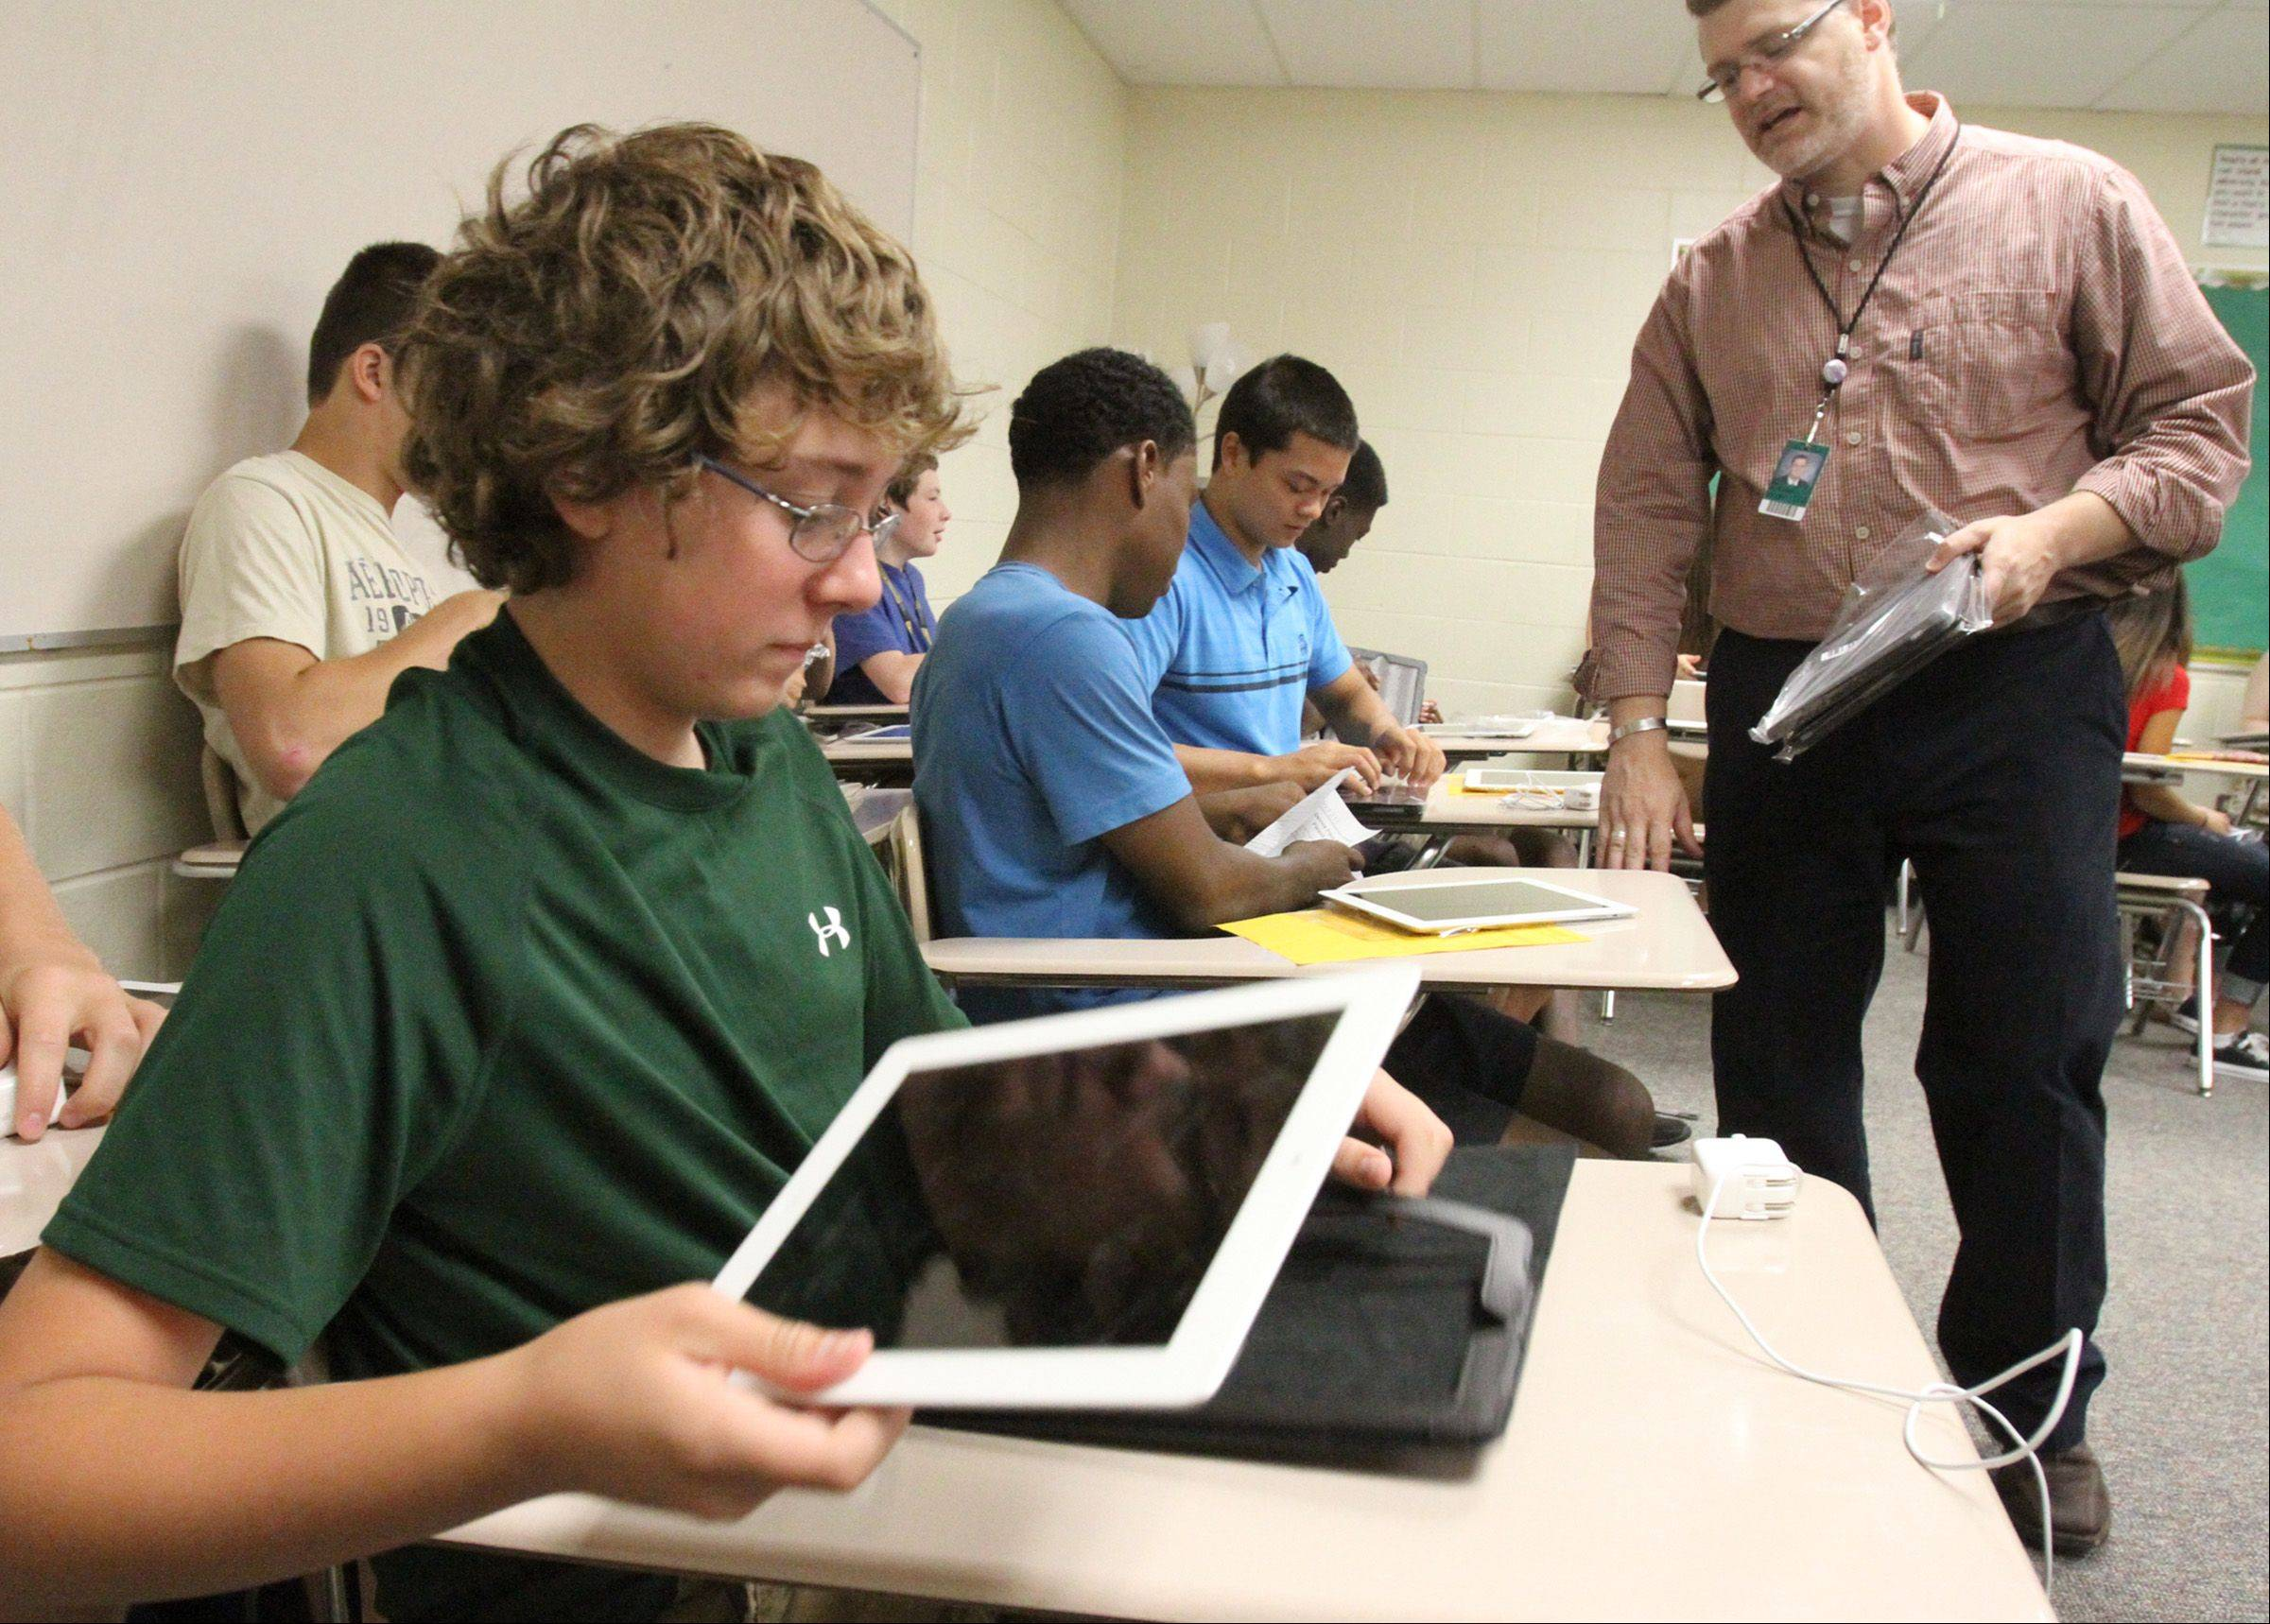 High School District 211 gives out iPads to 1,500 students